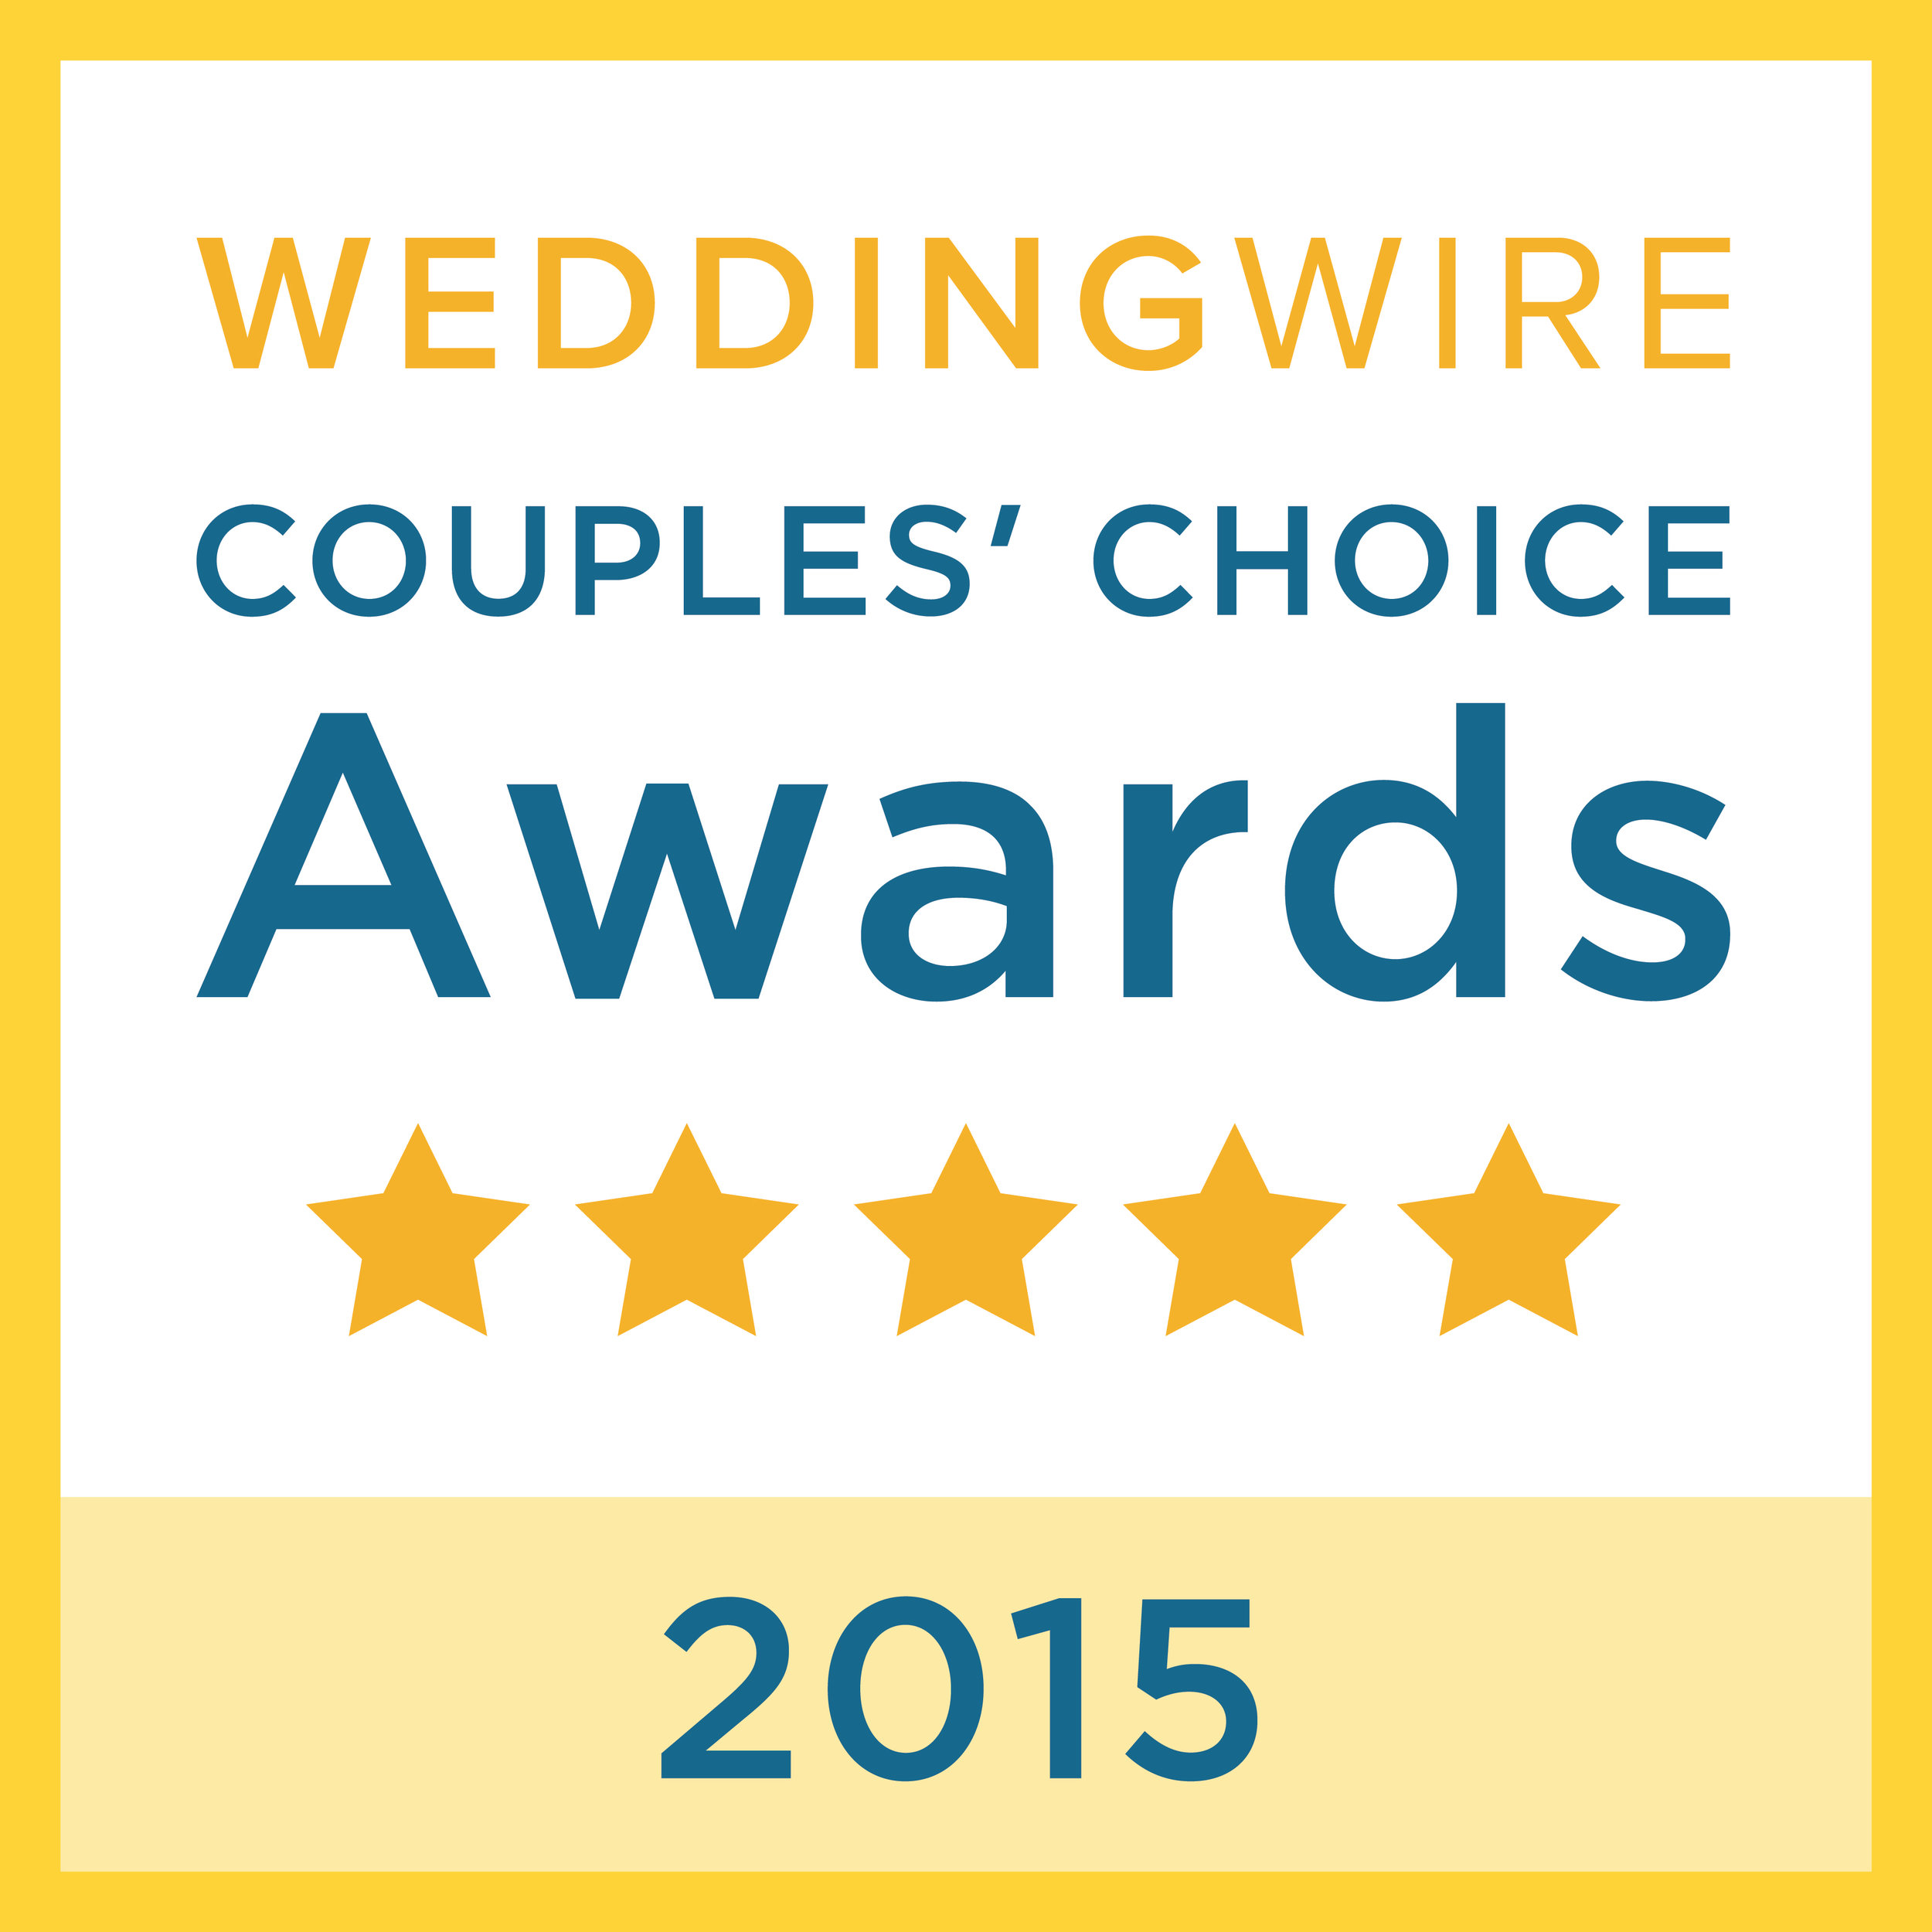 Wedding_Wire_Couples_Choice_2015.jpg